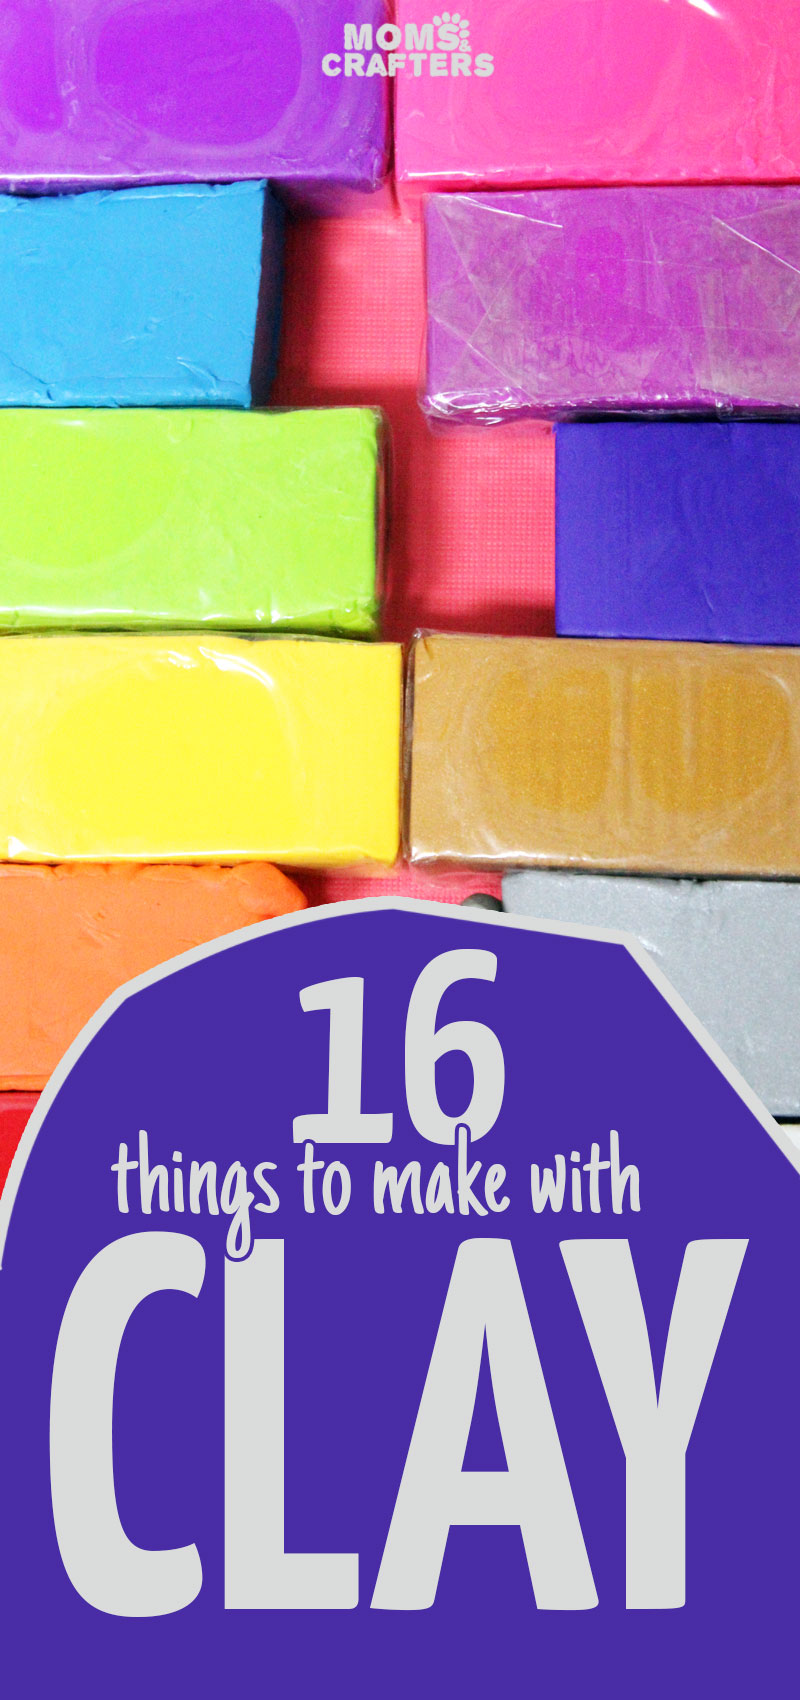 16 fun and easy clay crafts for moms or anyone! You'll love these DIY clay bowls, candle holders, toys, and more. I put together some projects that use polymer clay, some use air dry clay, and lots of fun DIY ideas for kids, for teens, and for adults.